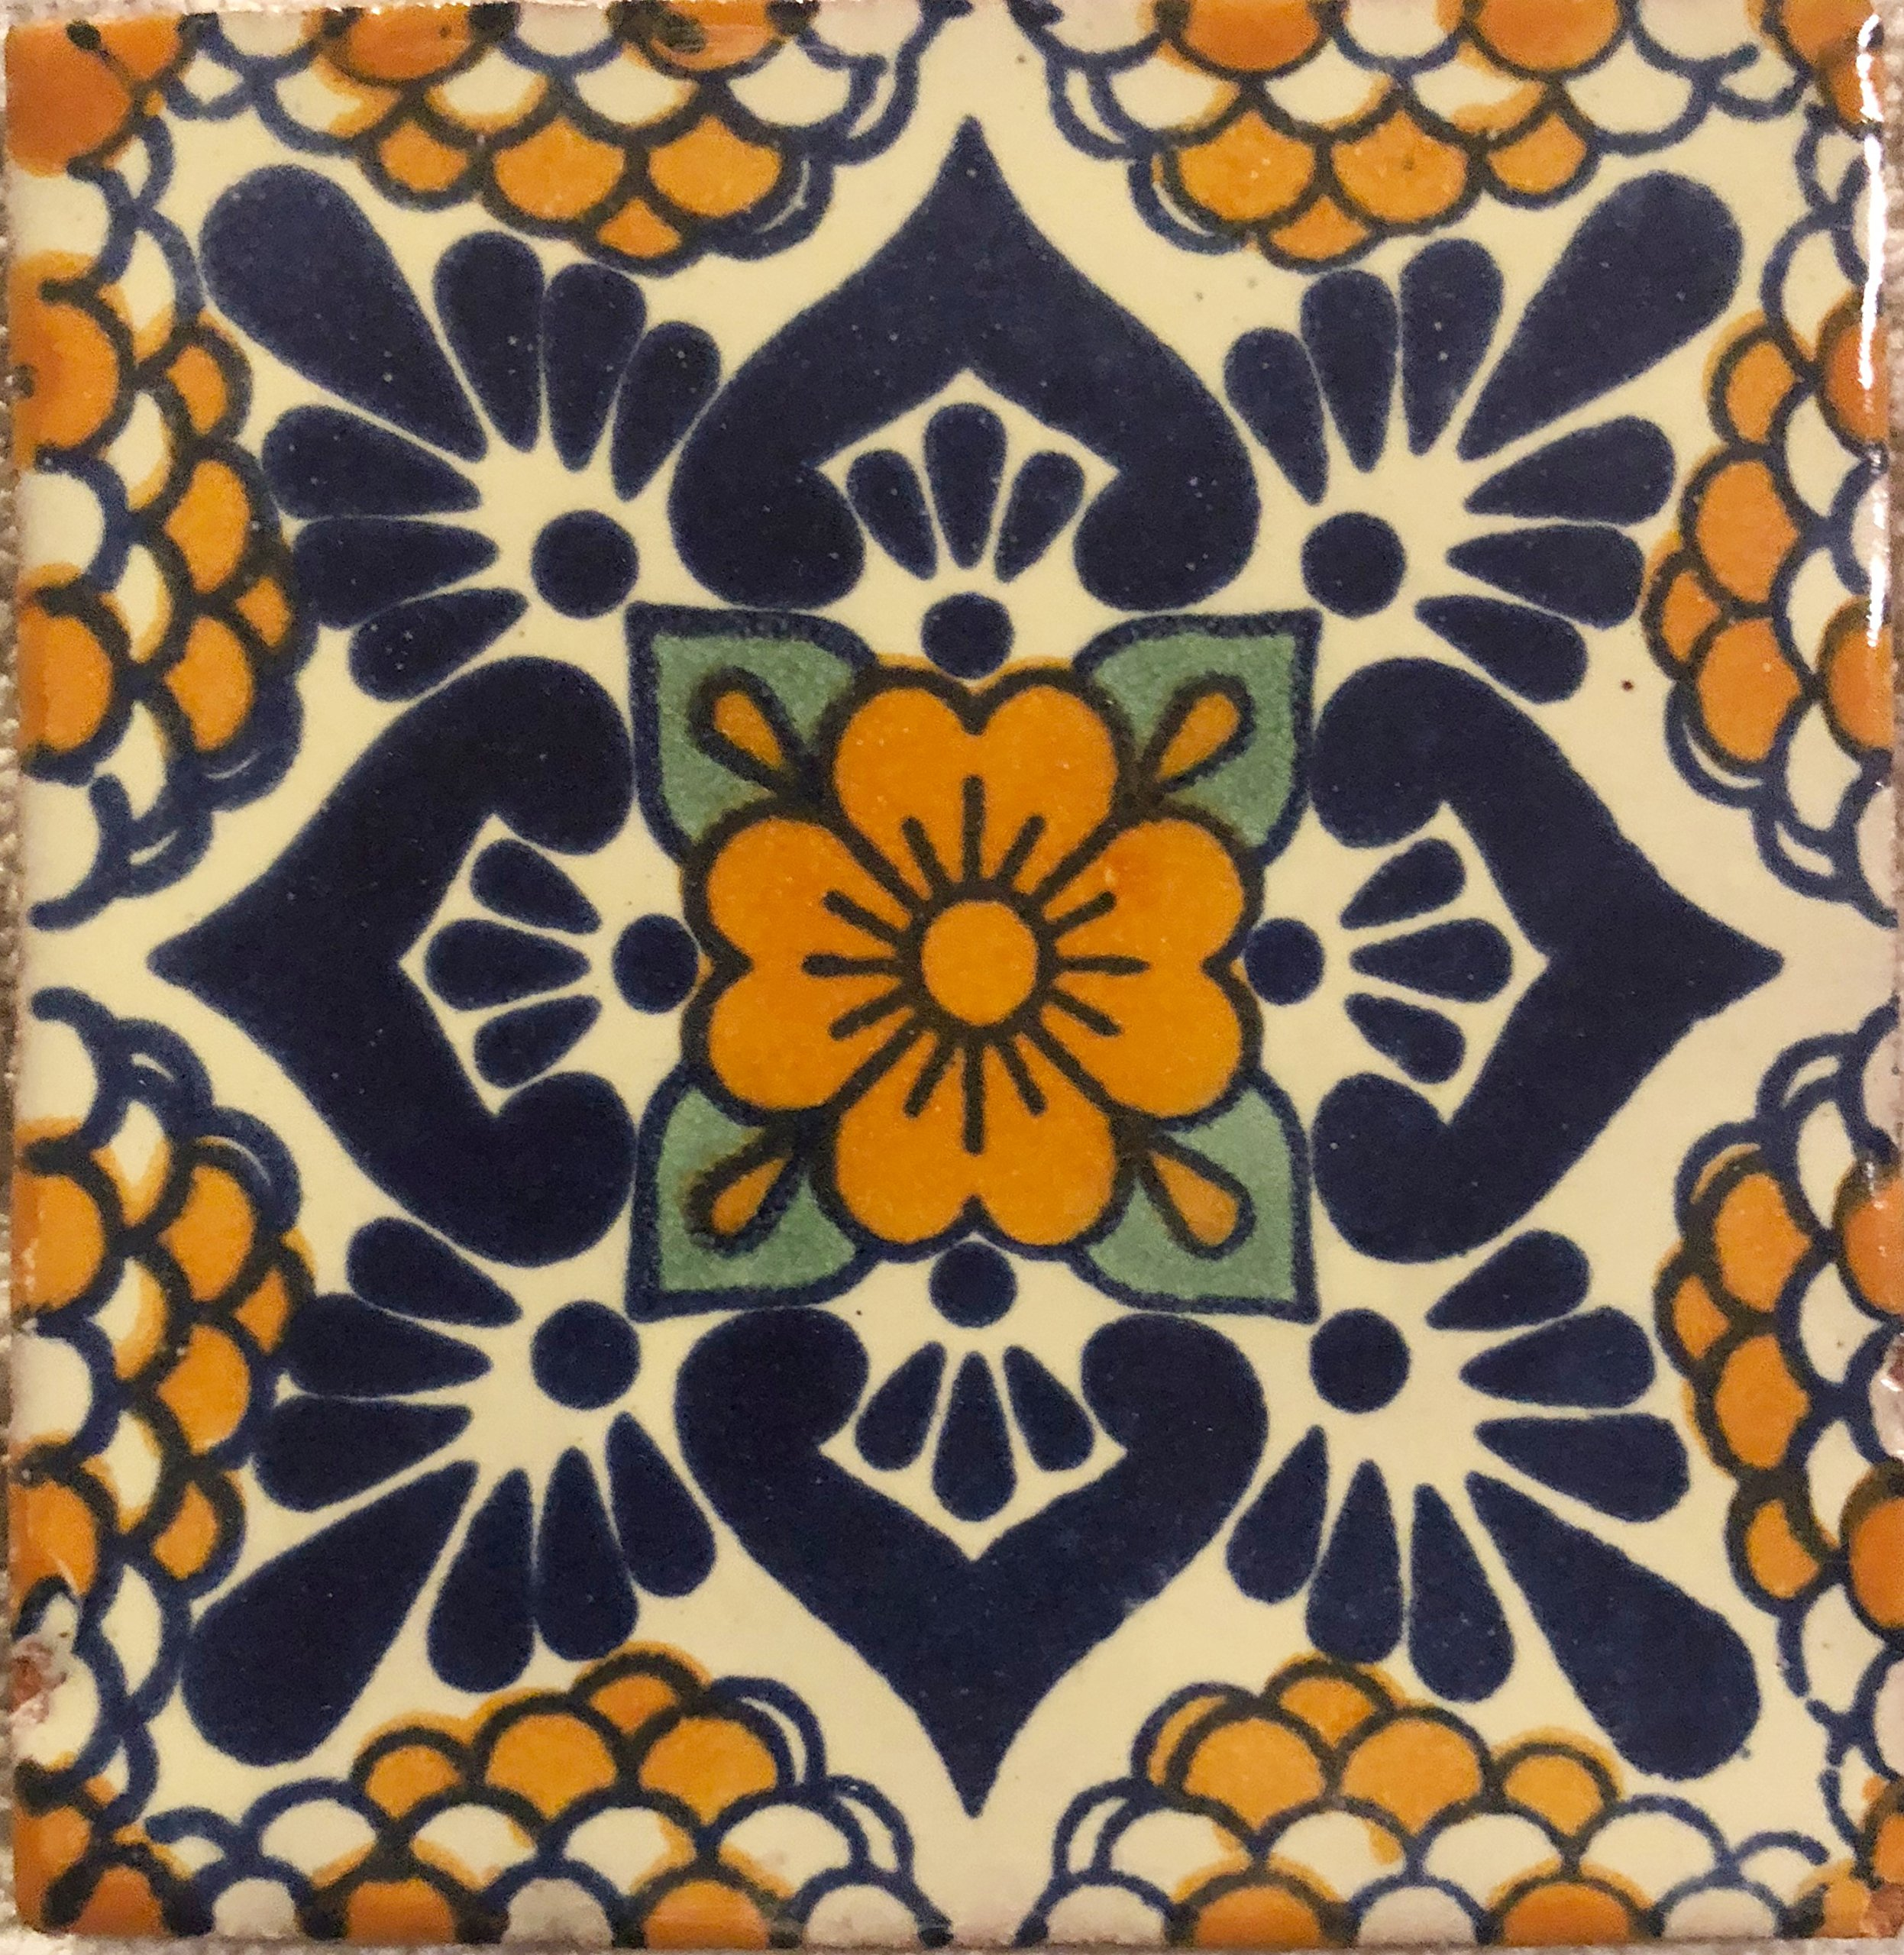 Ceramic Talavera Mexican Tile 4x4'', 9 Pieces (NOT Stickers) A1 Export Quality! - EX104Y